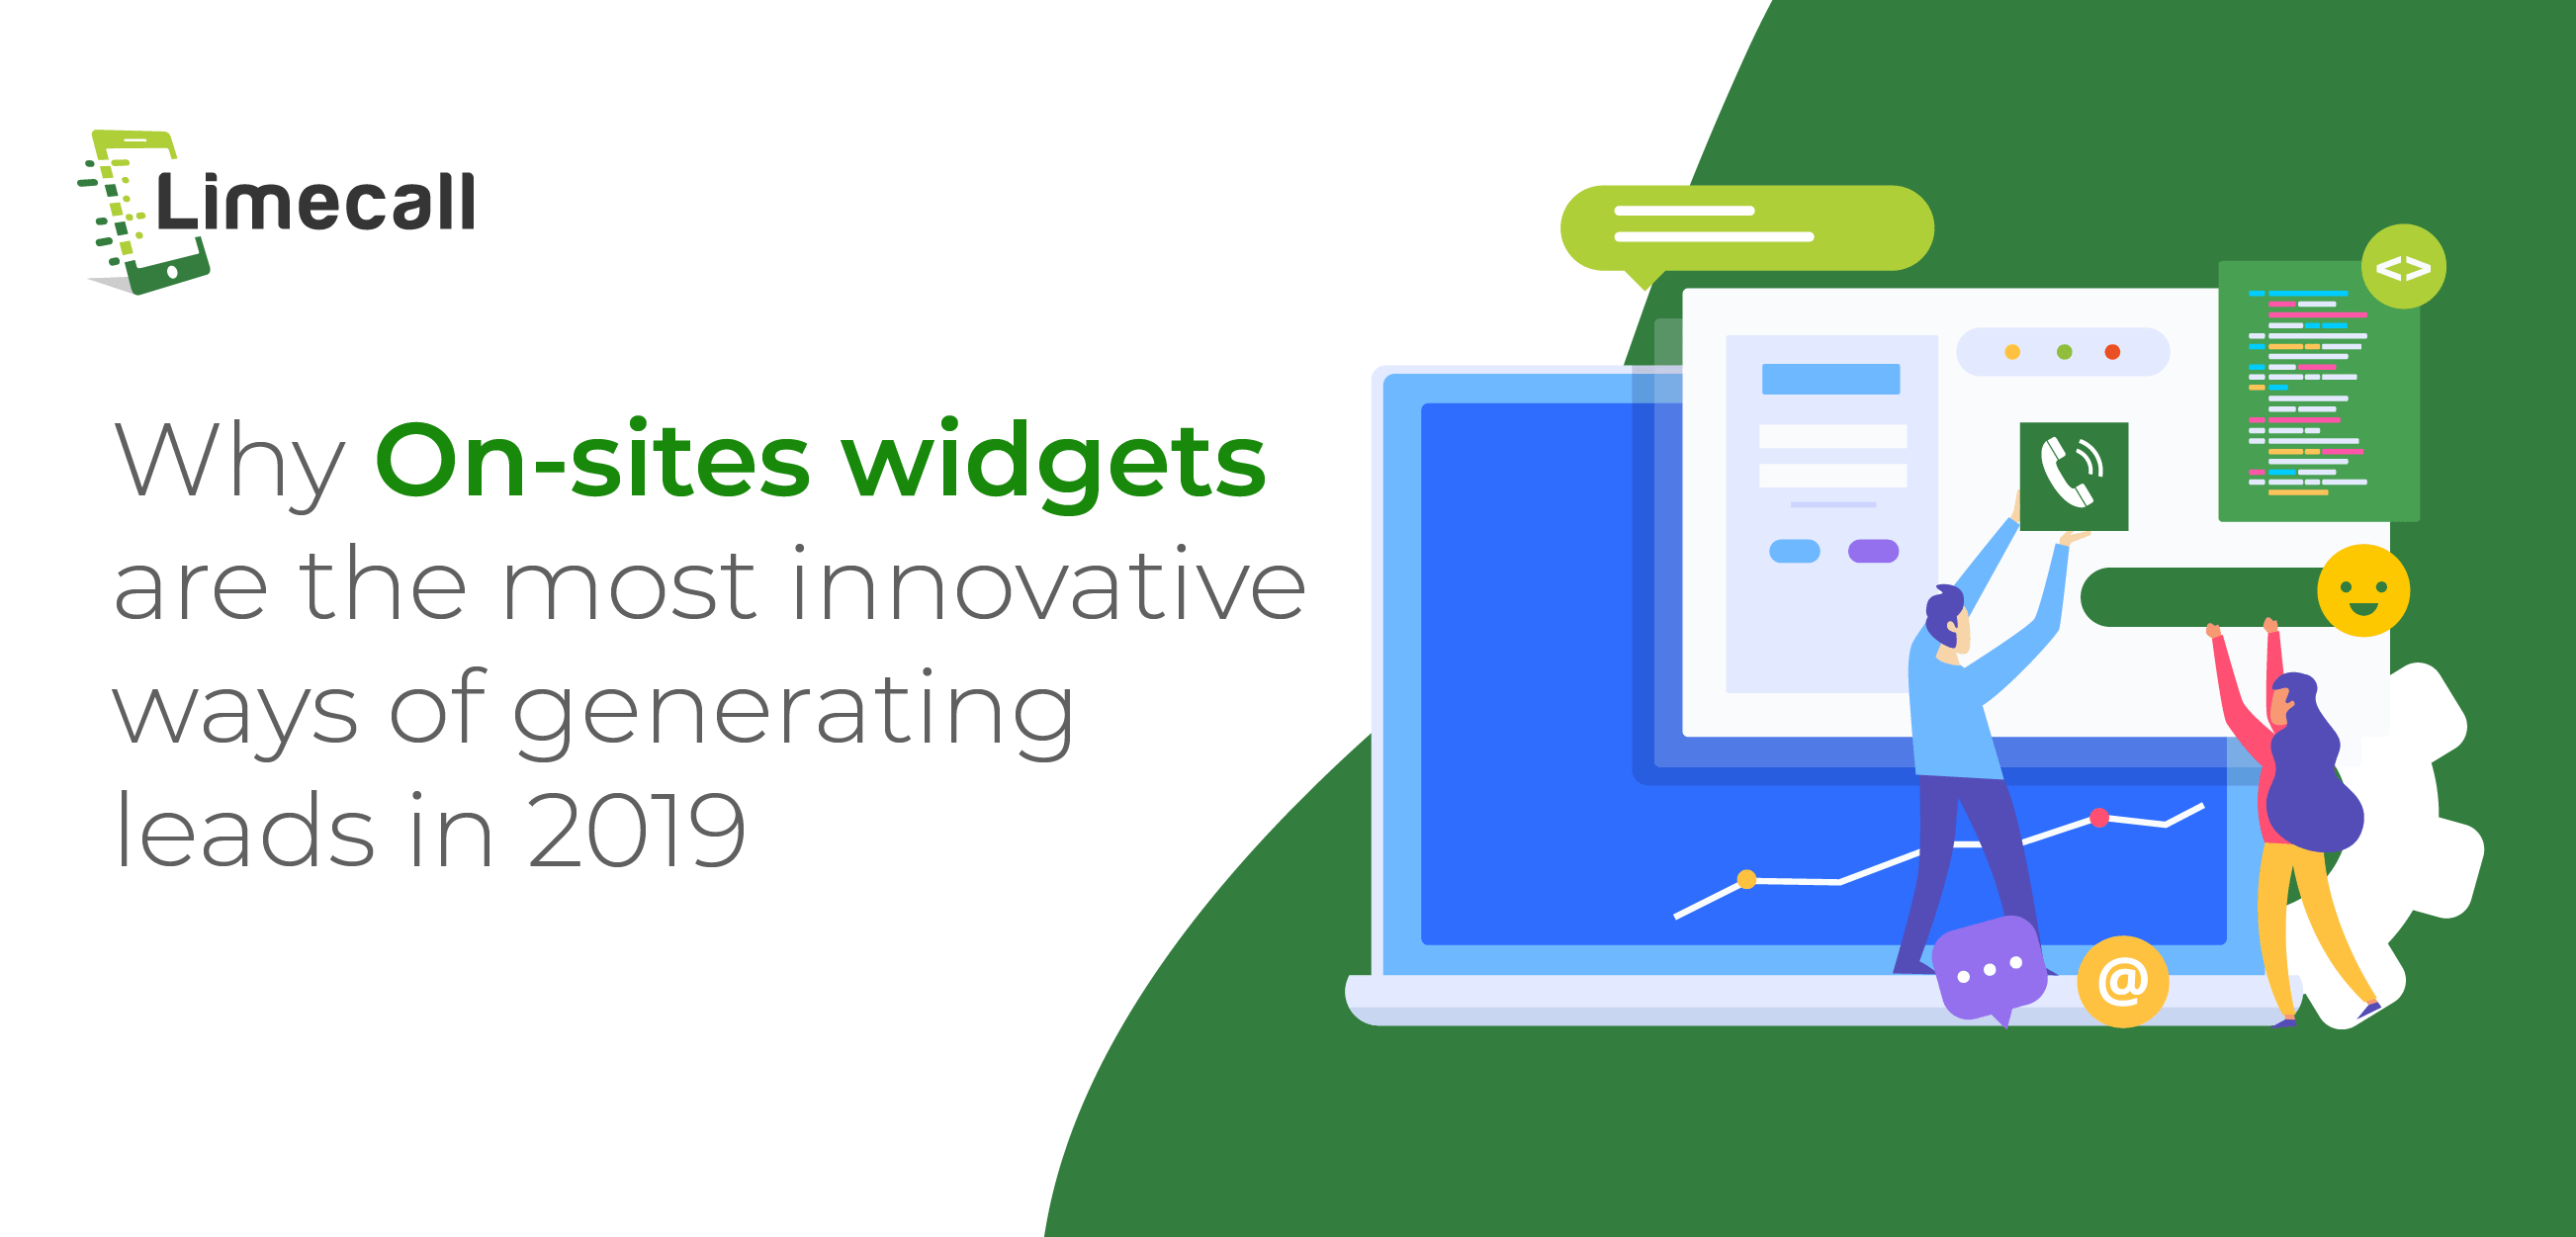 Why On-sites widgets are the most innovative ways of generating leads in 2019